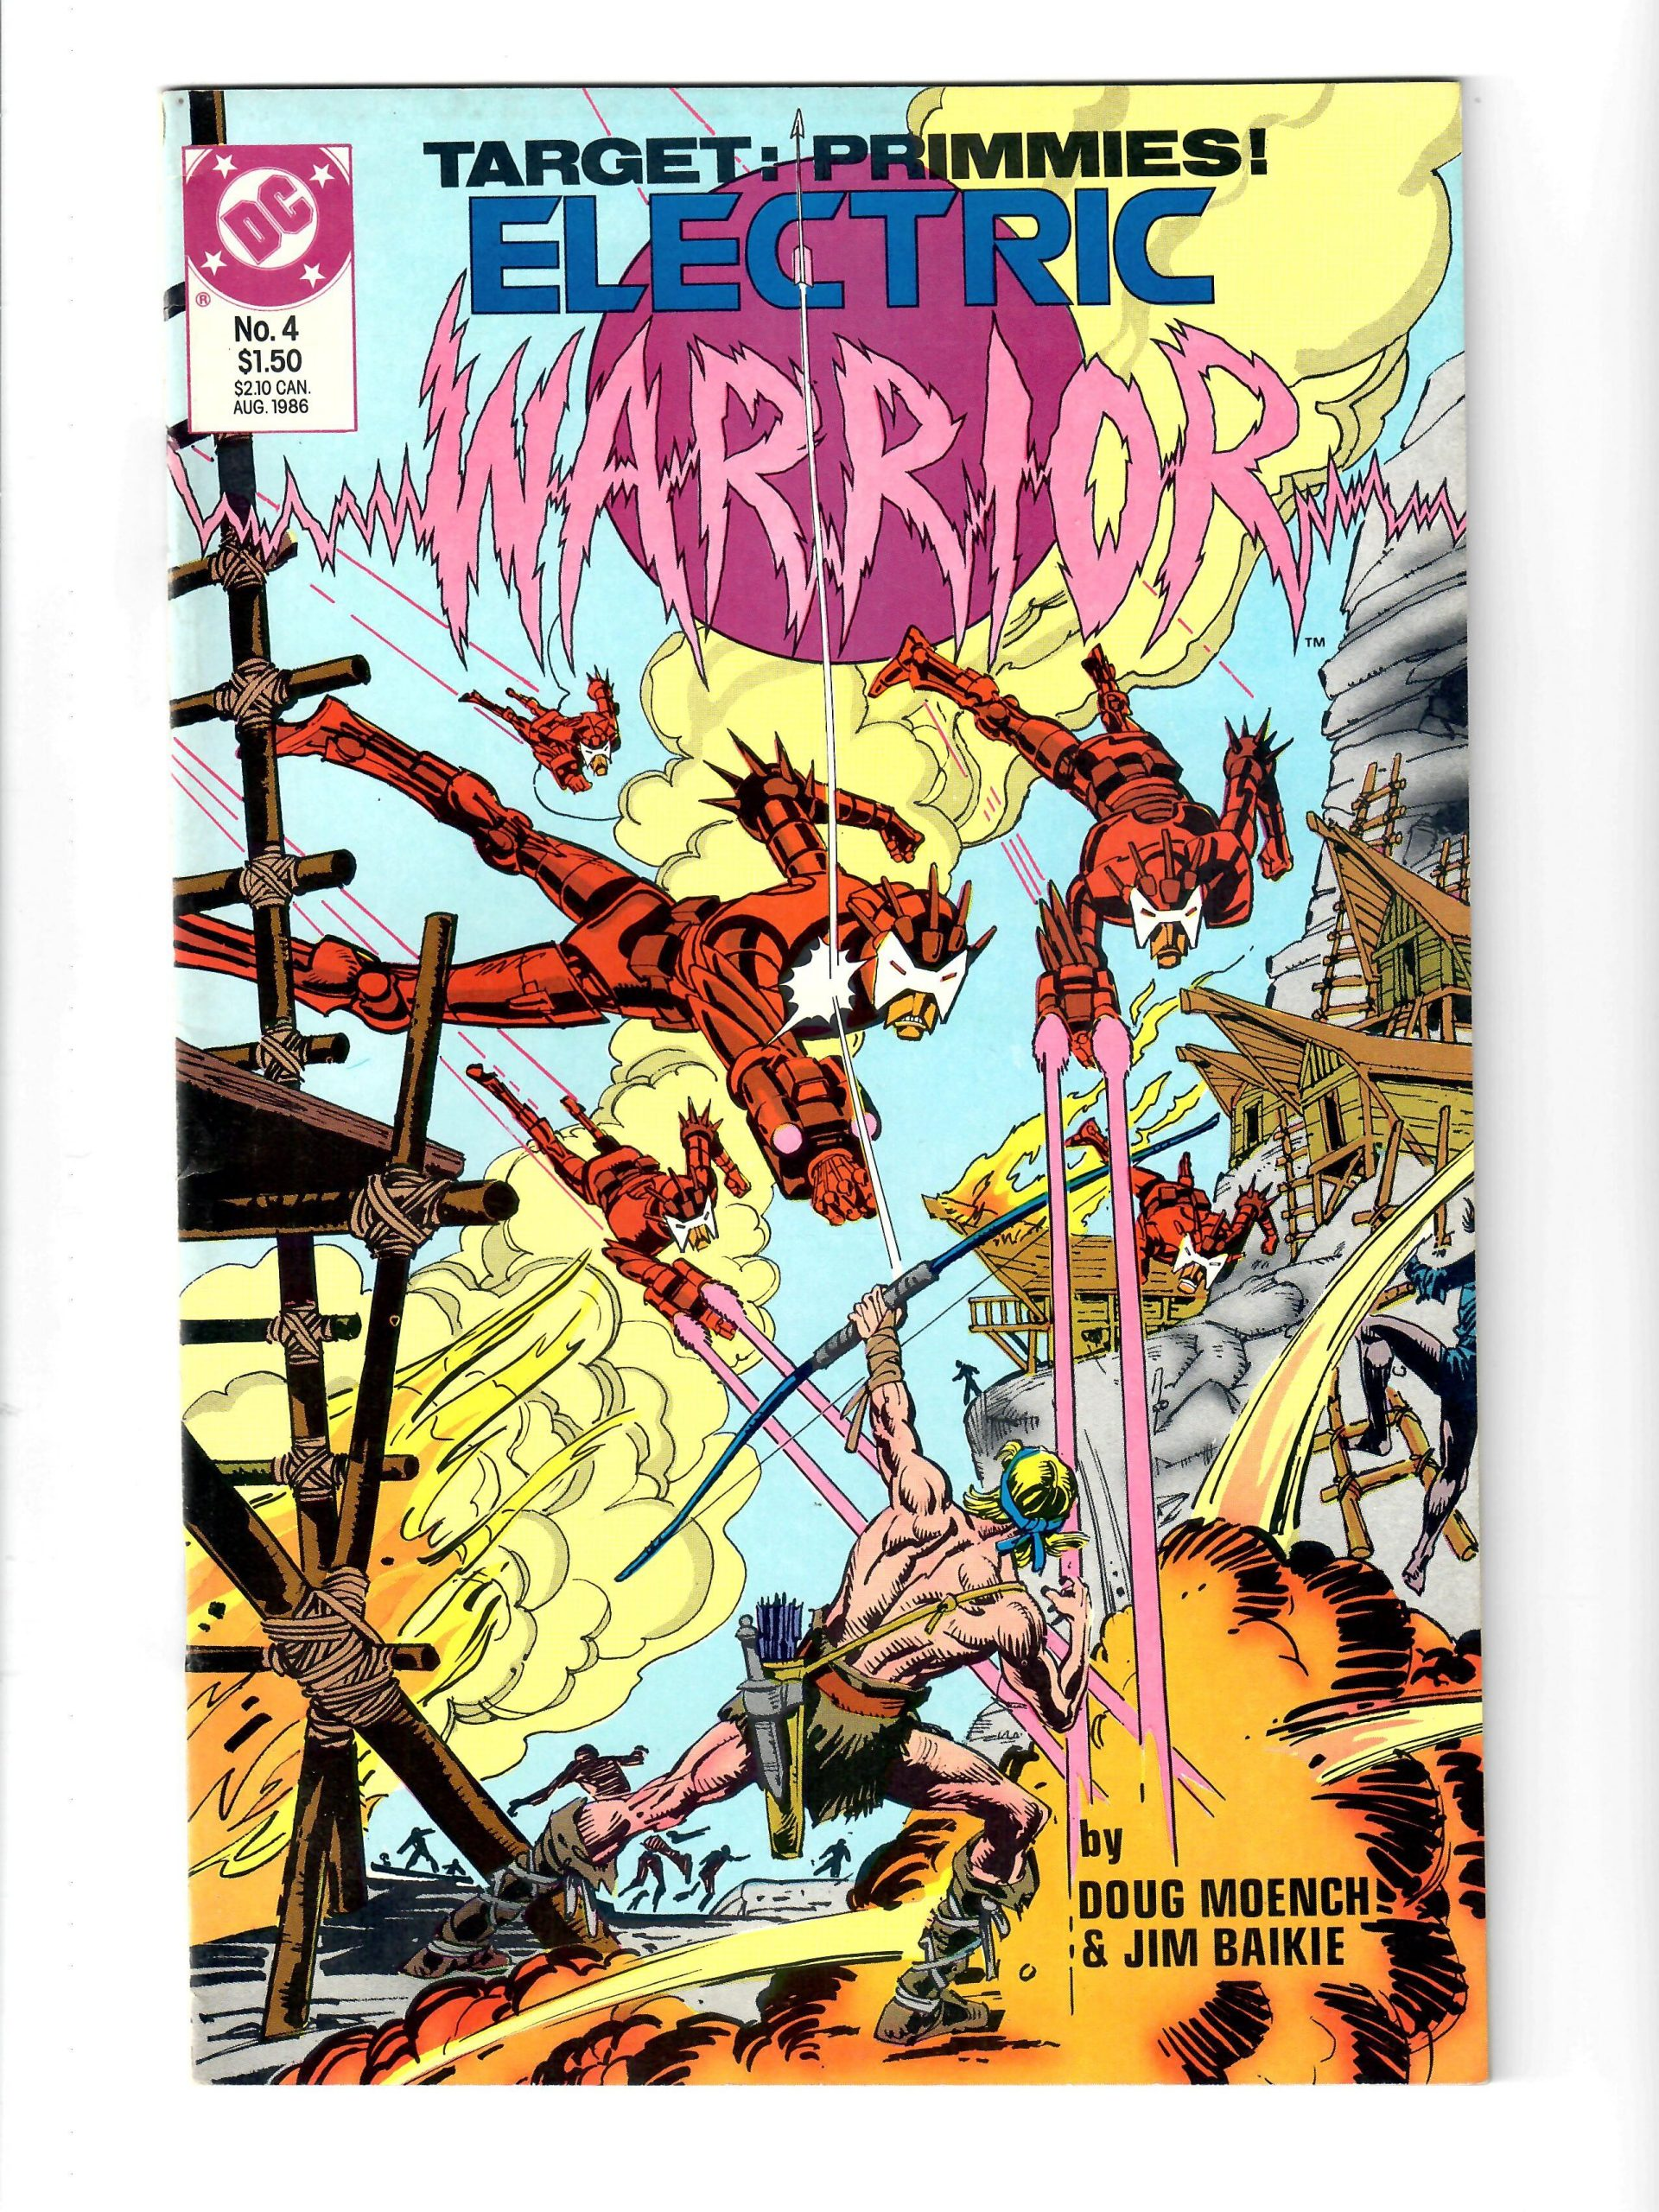 DC Comics Target: Primmies! Electric Warrior #4 Aug 1986 Comic #141836-10